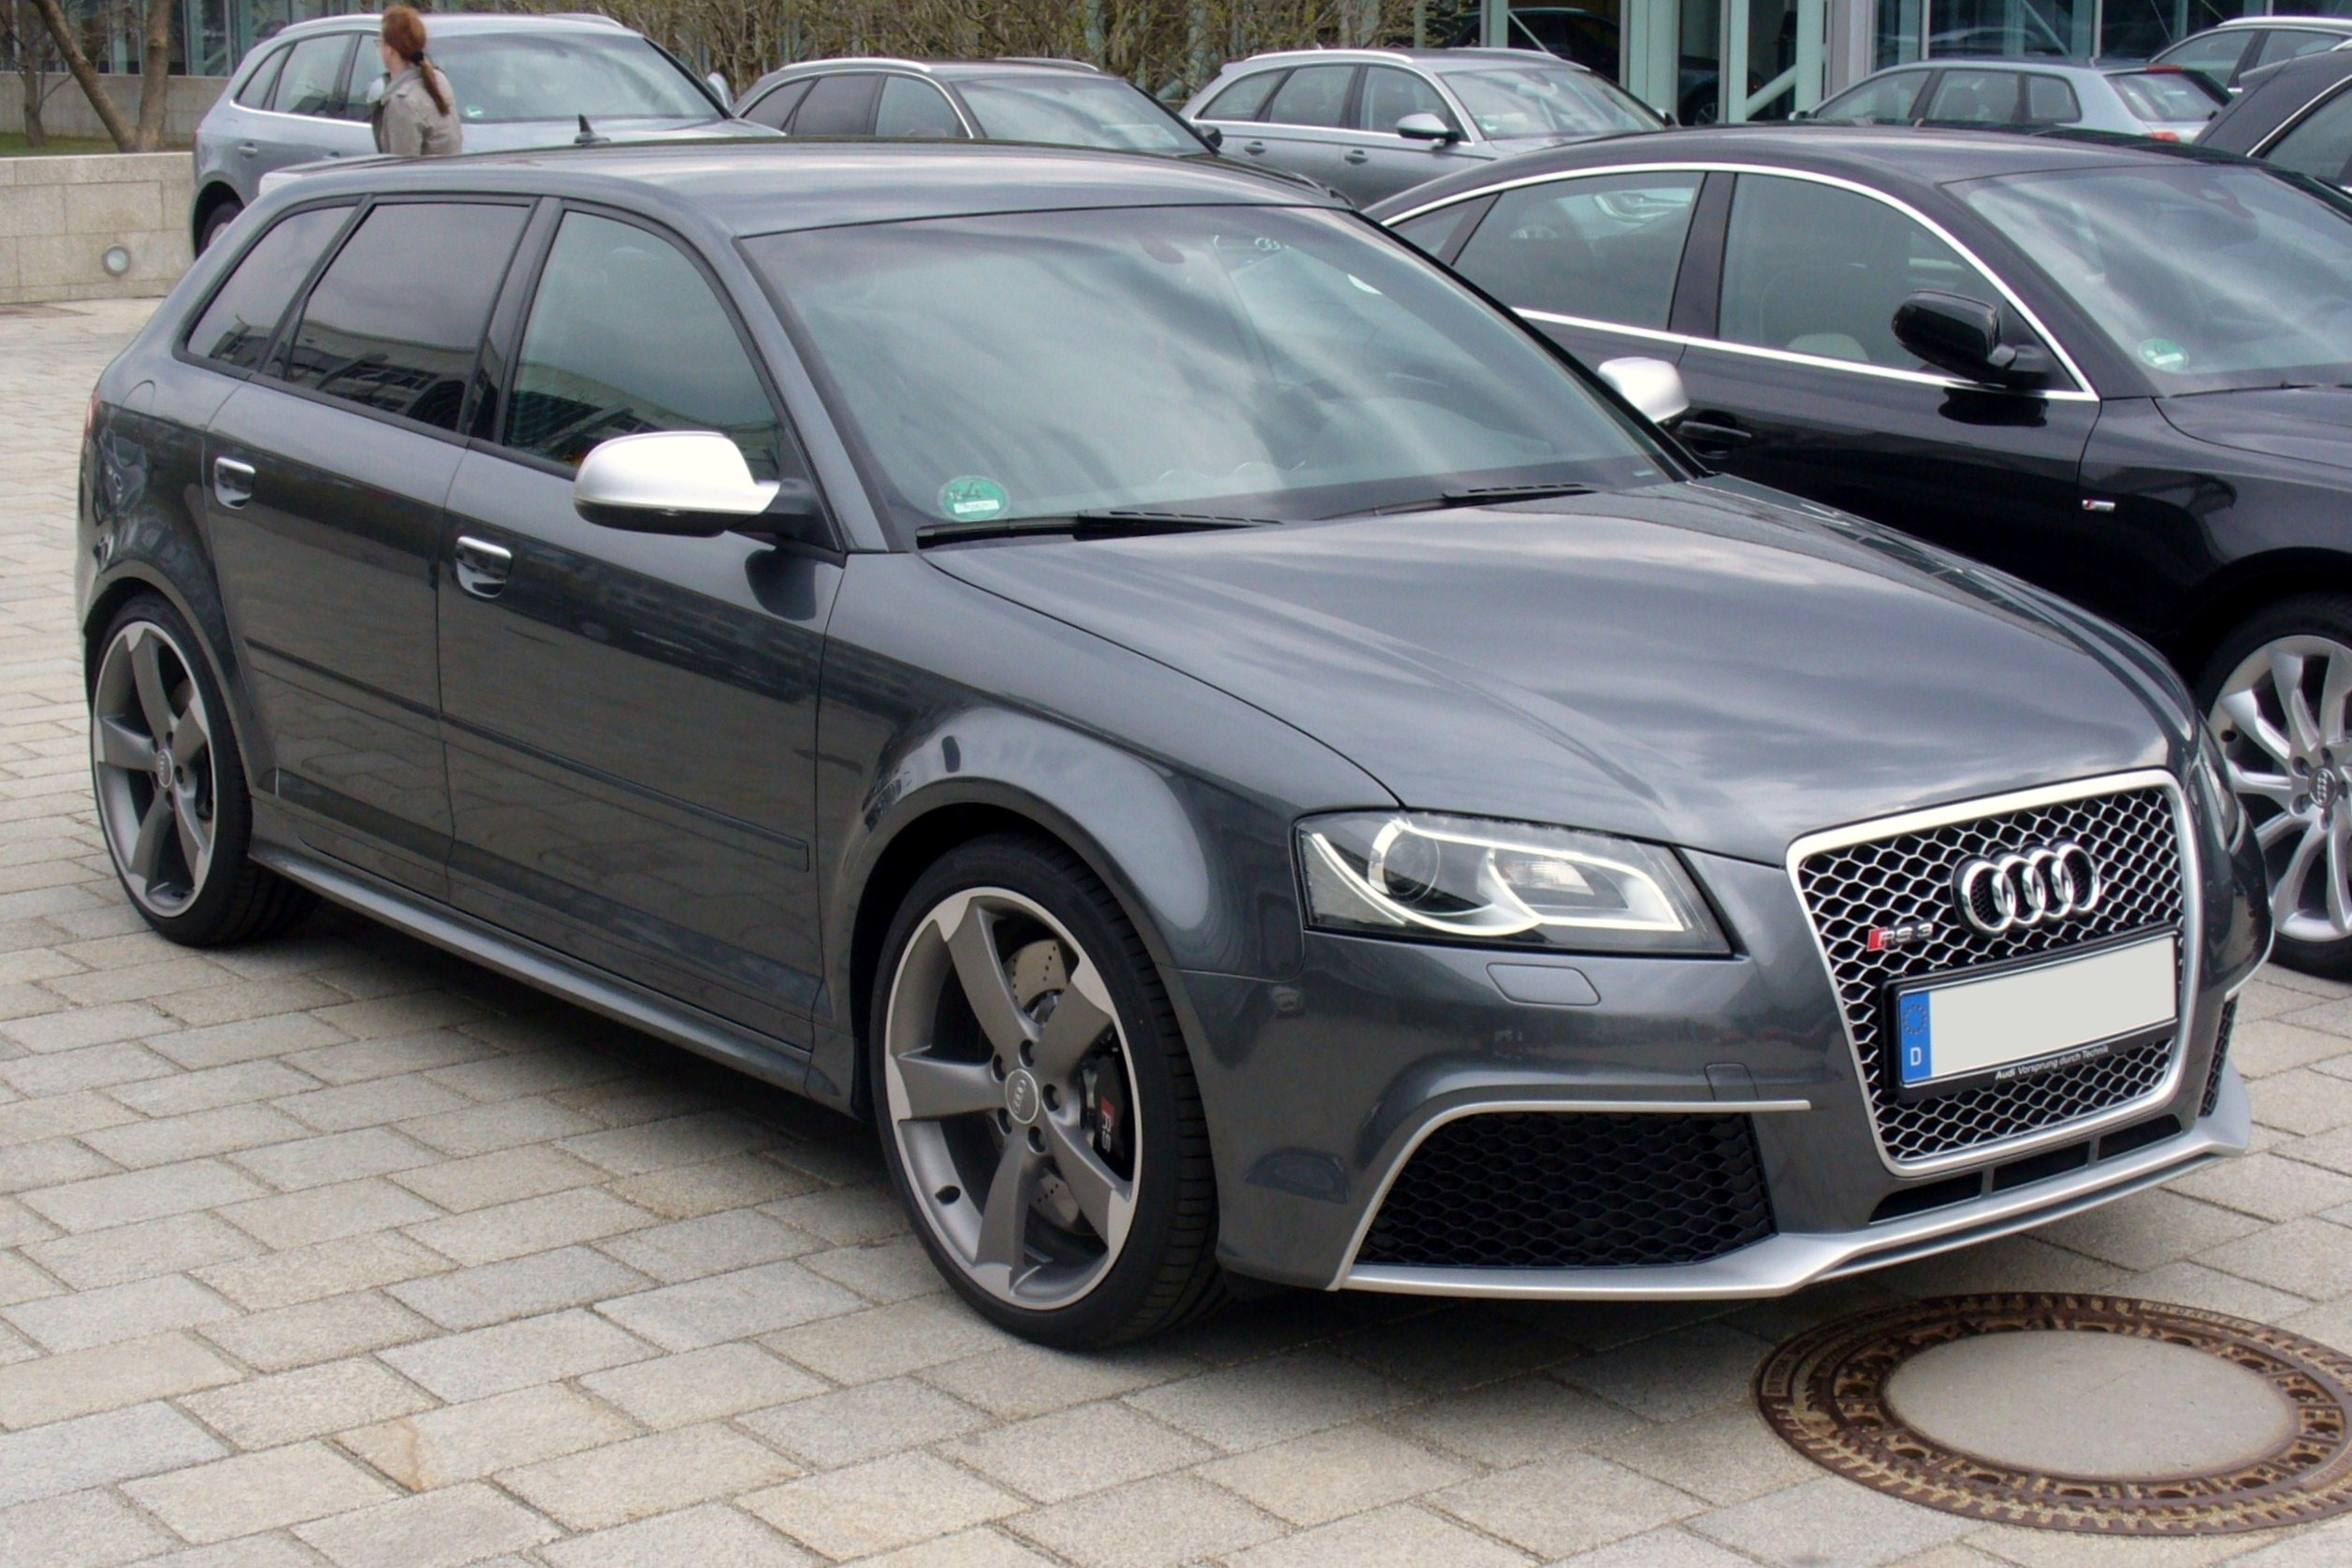 audi rs3 images #4